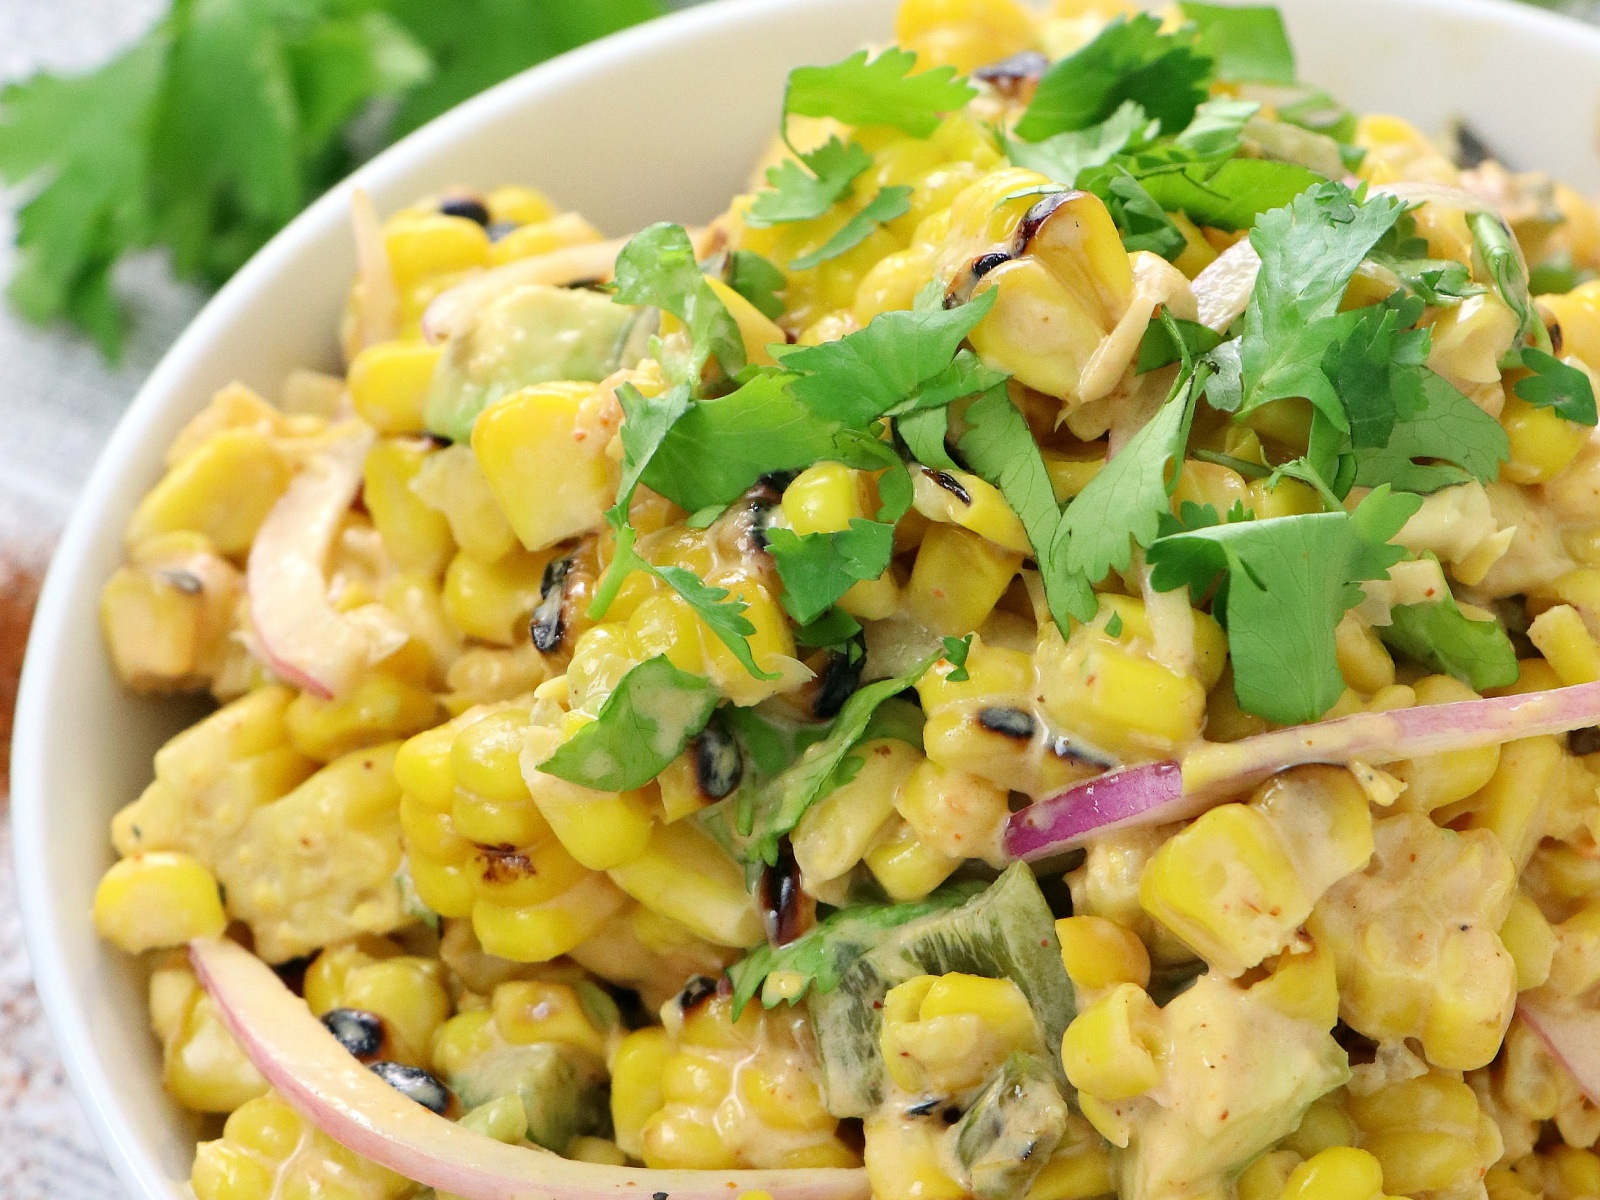 spicy vegan grilled corn salad with jalapeno and avocado